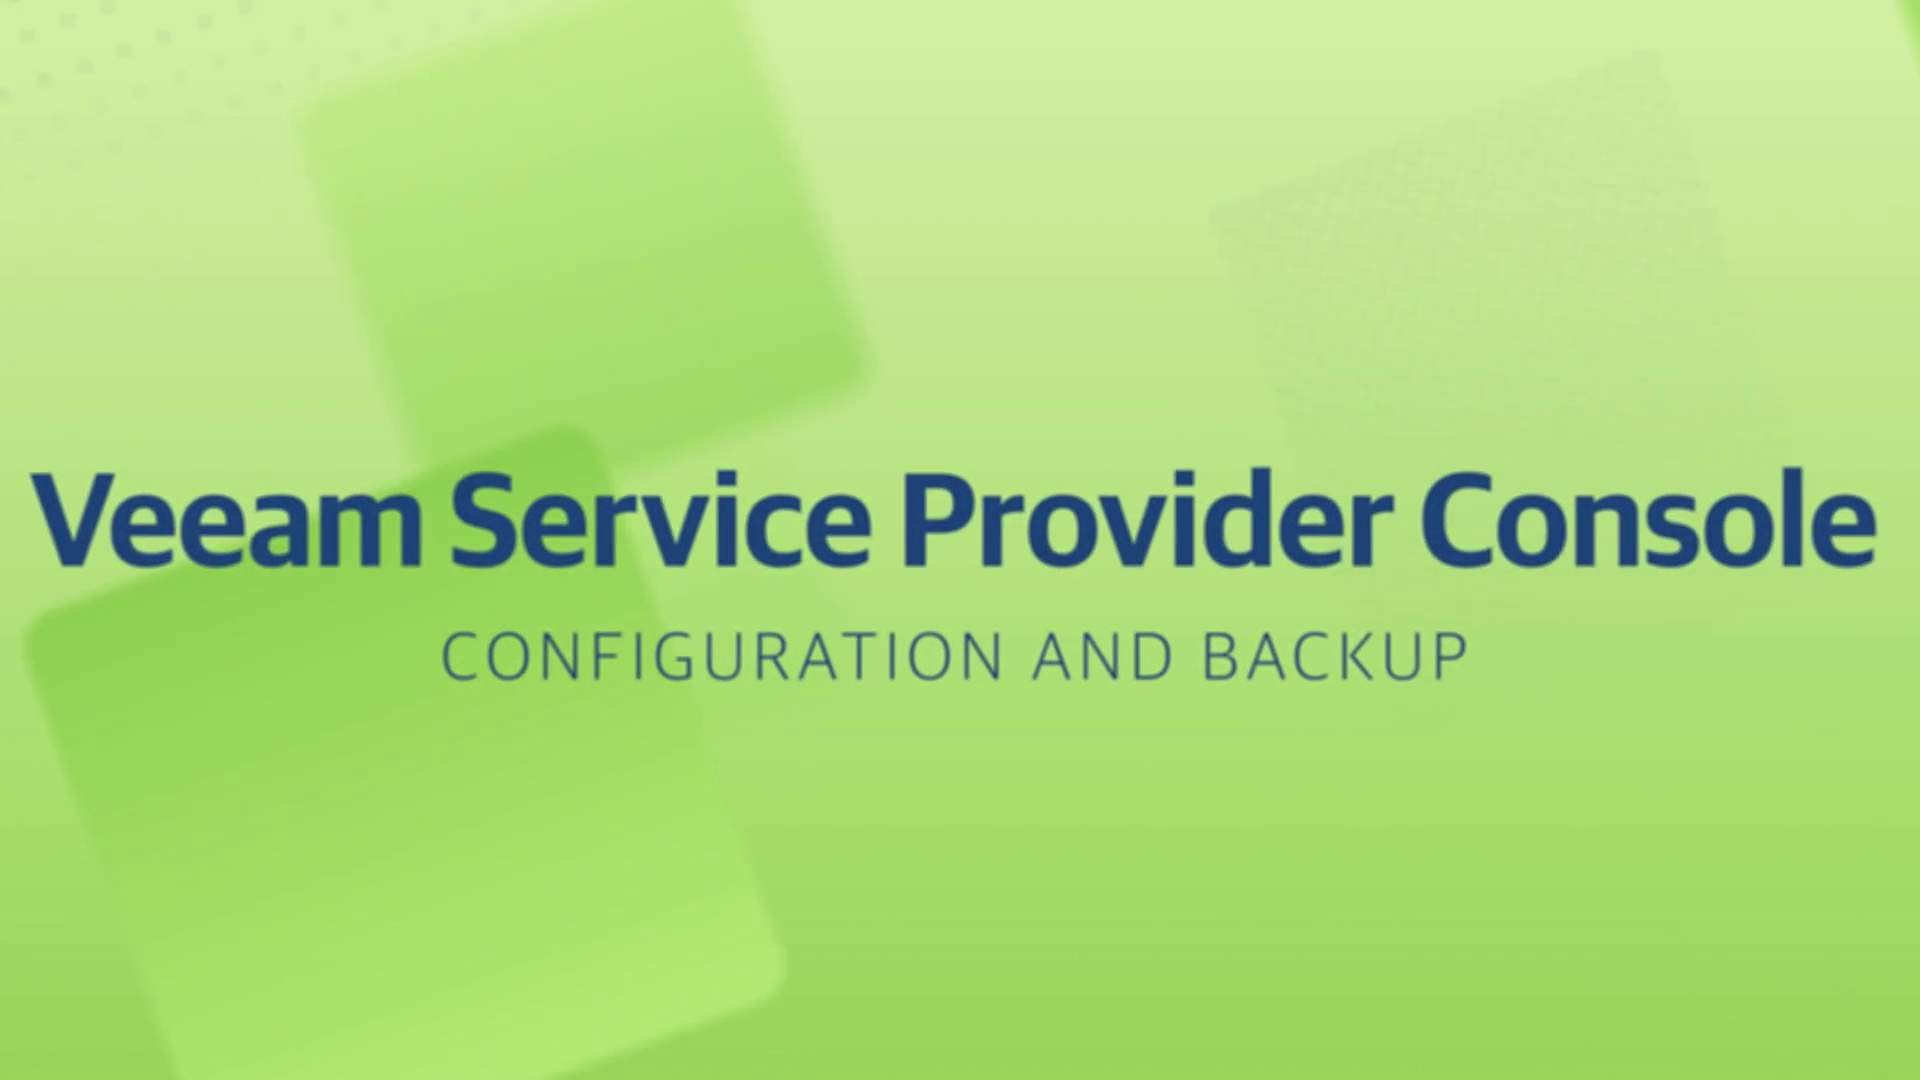 Product launch v11 - VSPC - Configuration and Backup